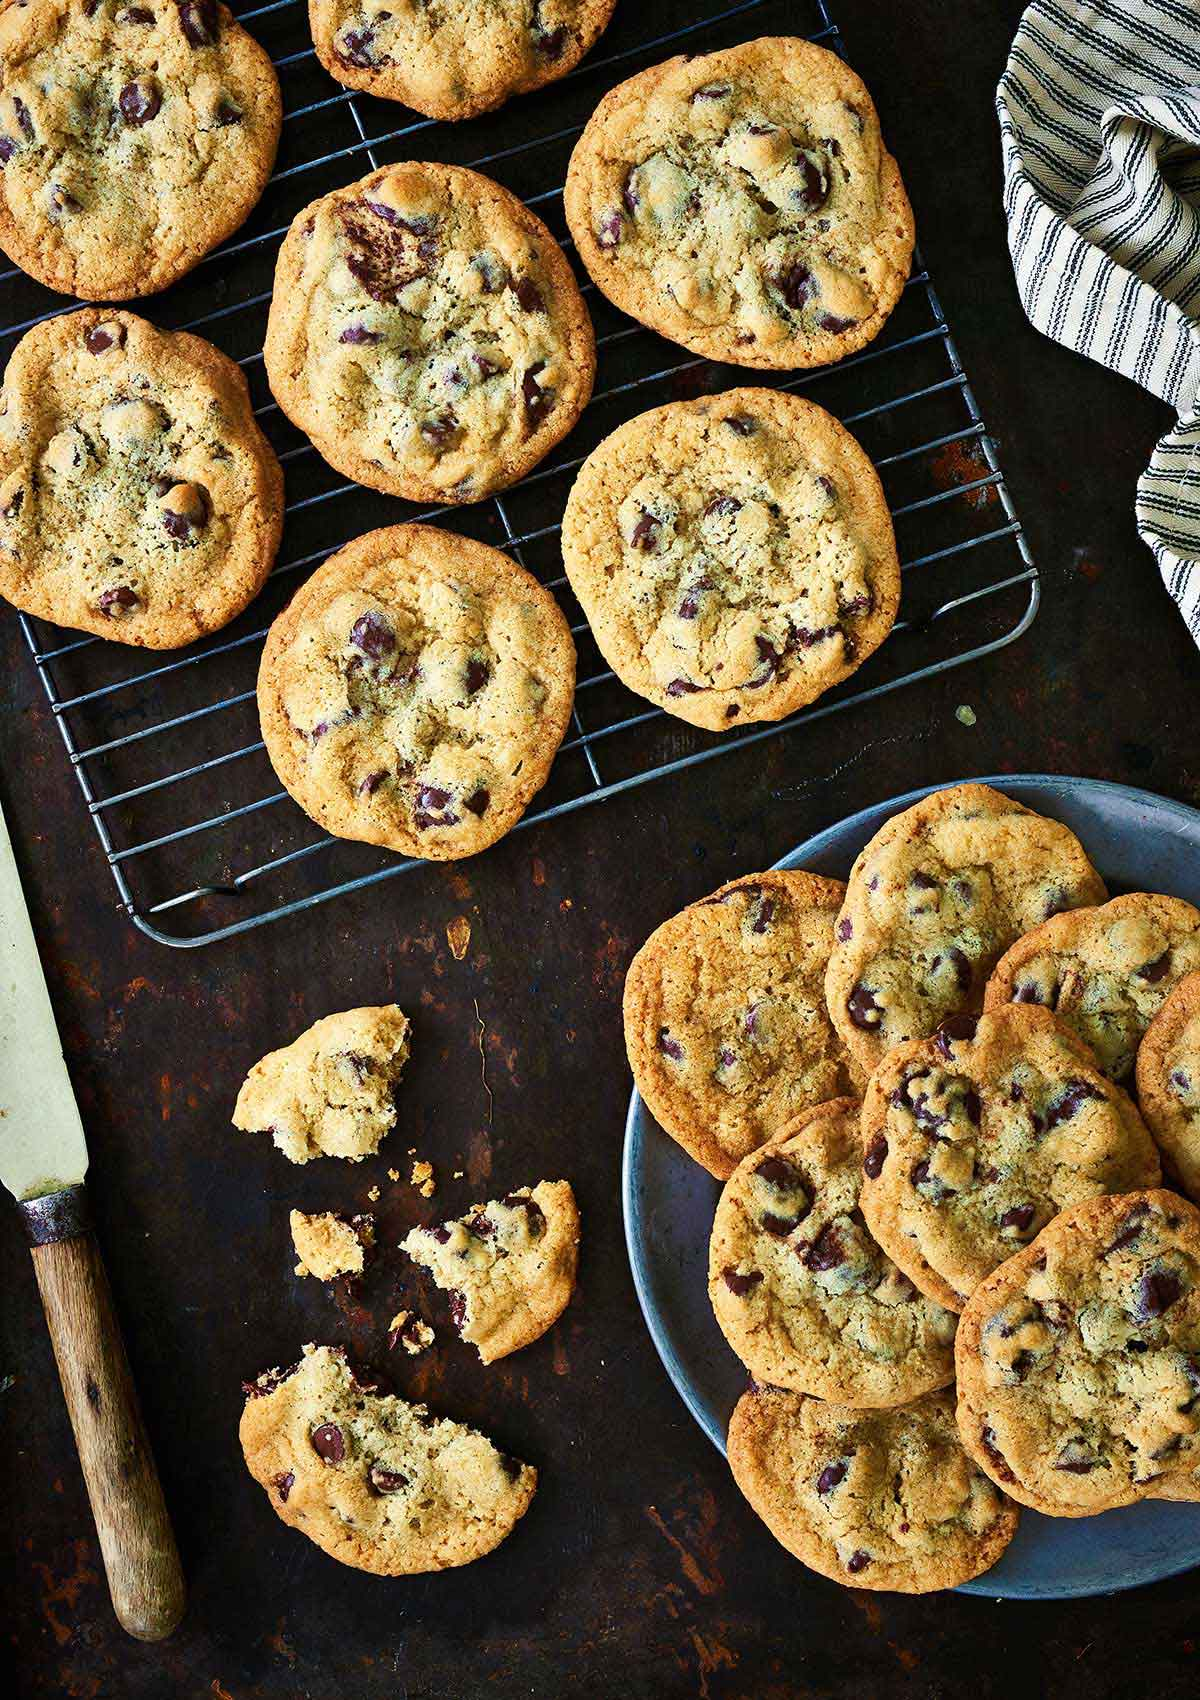 Freshly baked chocolate chip cookies on a cooling rack and on a plate